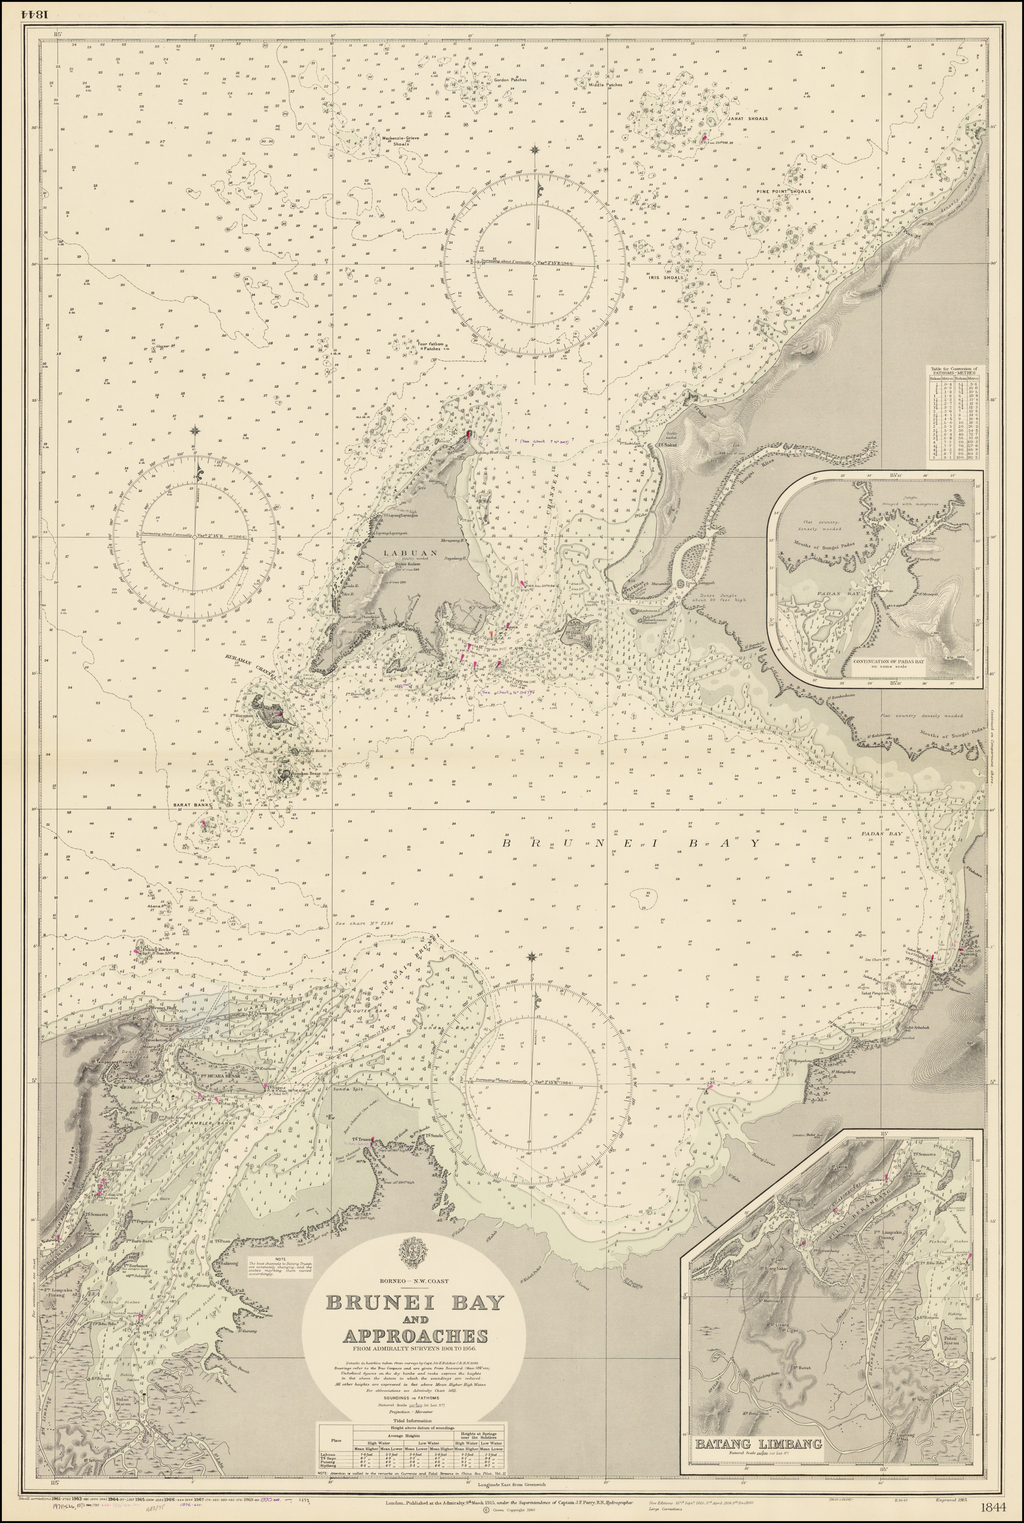 Brunei Bay and Approaches From Admiralty Surveys from 1901 to 1956. . . . By British Admiralty